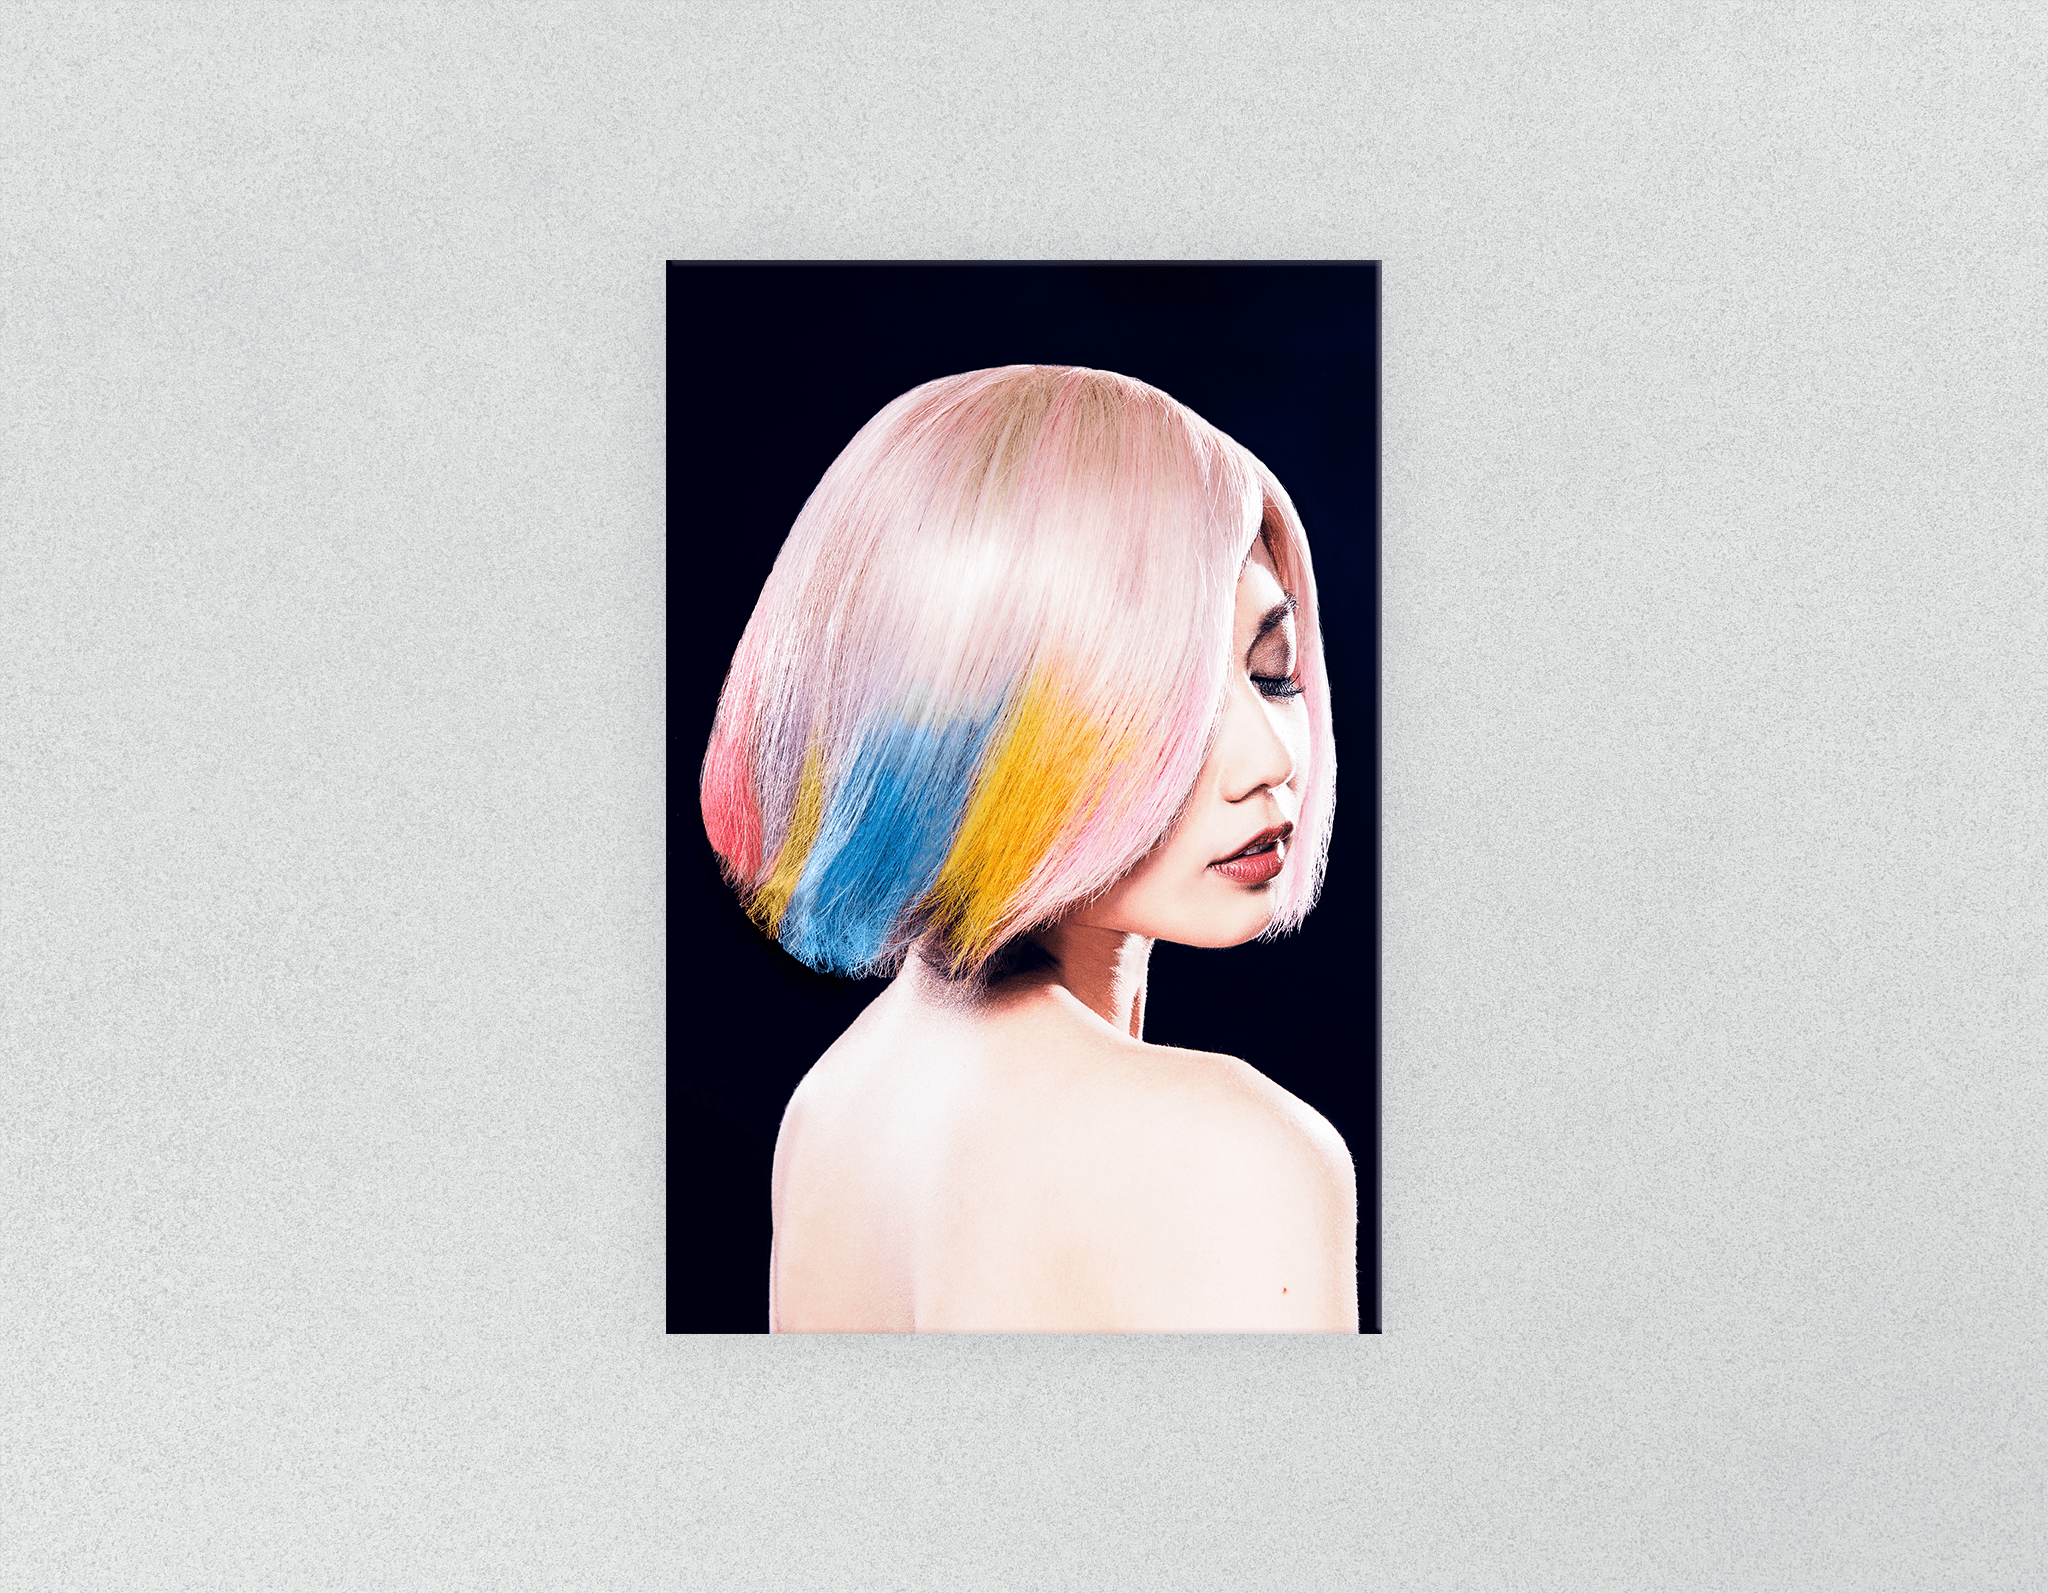 Plastic Salon Posters: Woman in Pink, Blue, Yellow Unicorn Hair